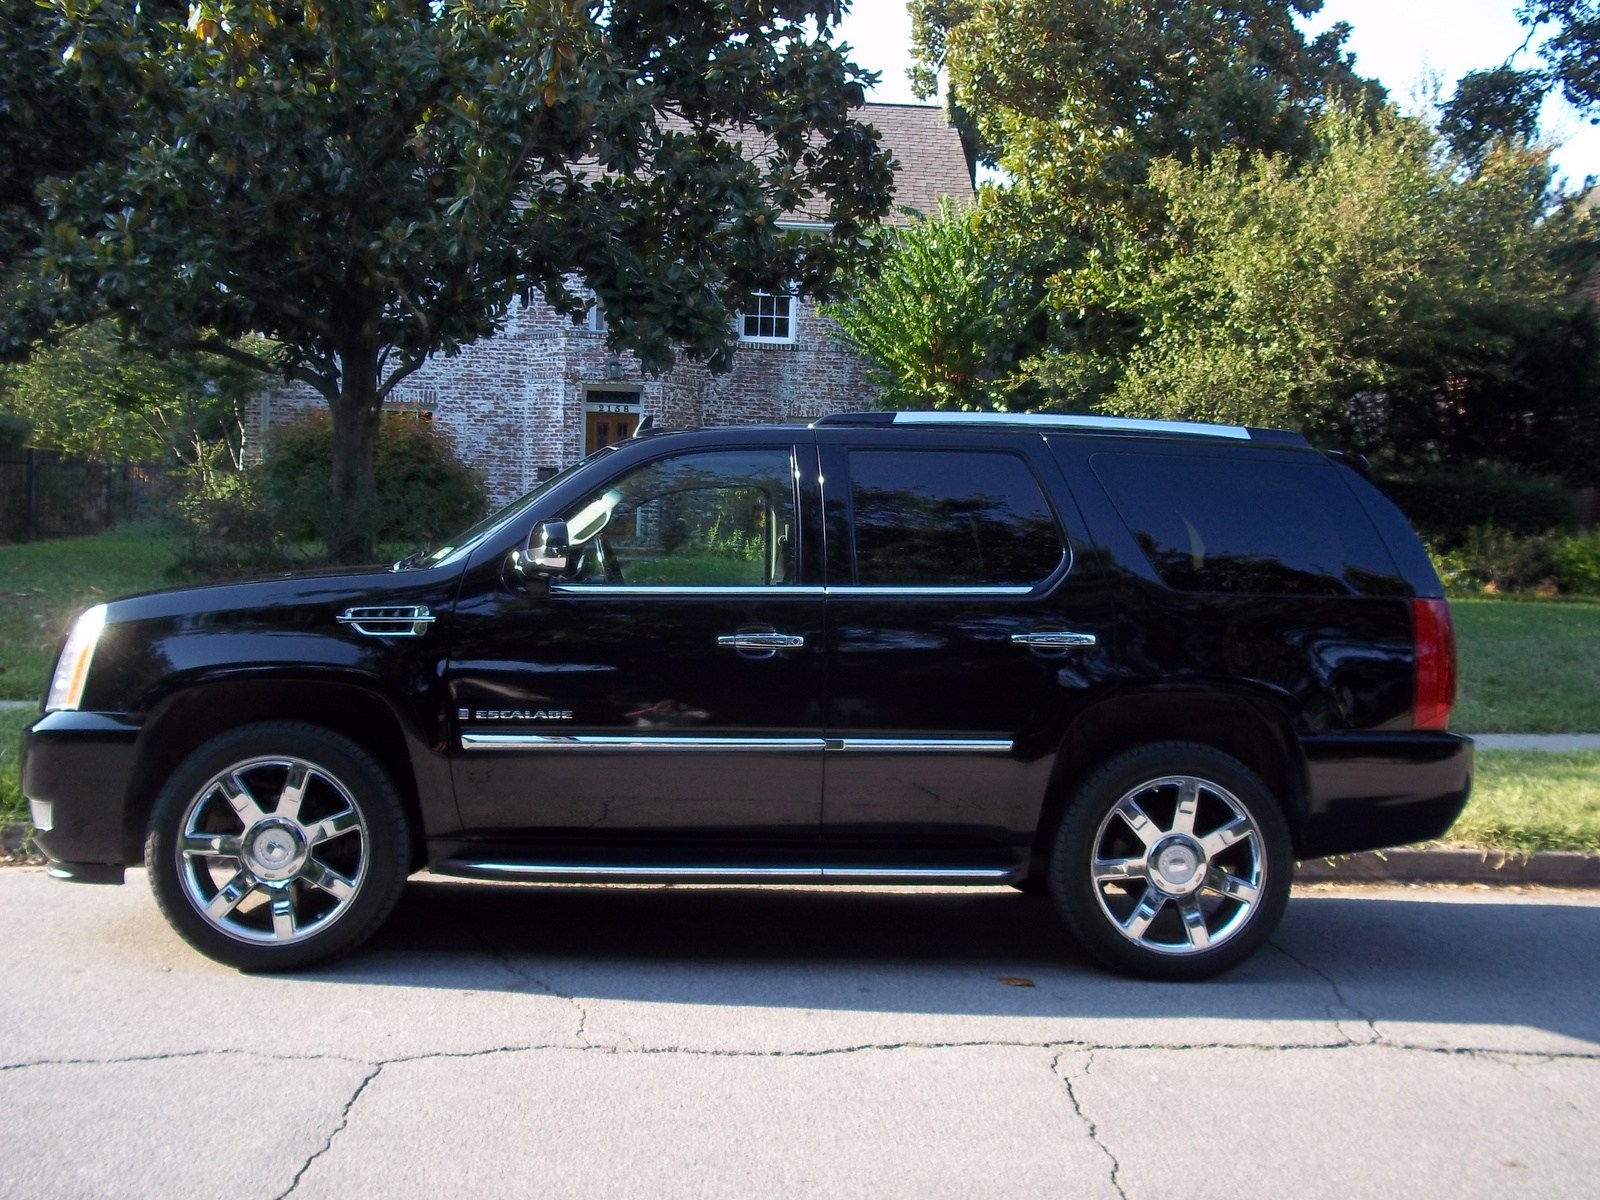 Cheap Used Vehicles for Sale Near Me Awesome Used Trucks Houston Craigslist Simple Cheap Used Cars for Sale by